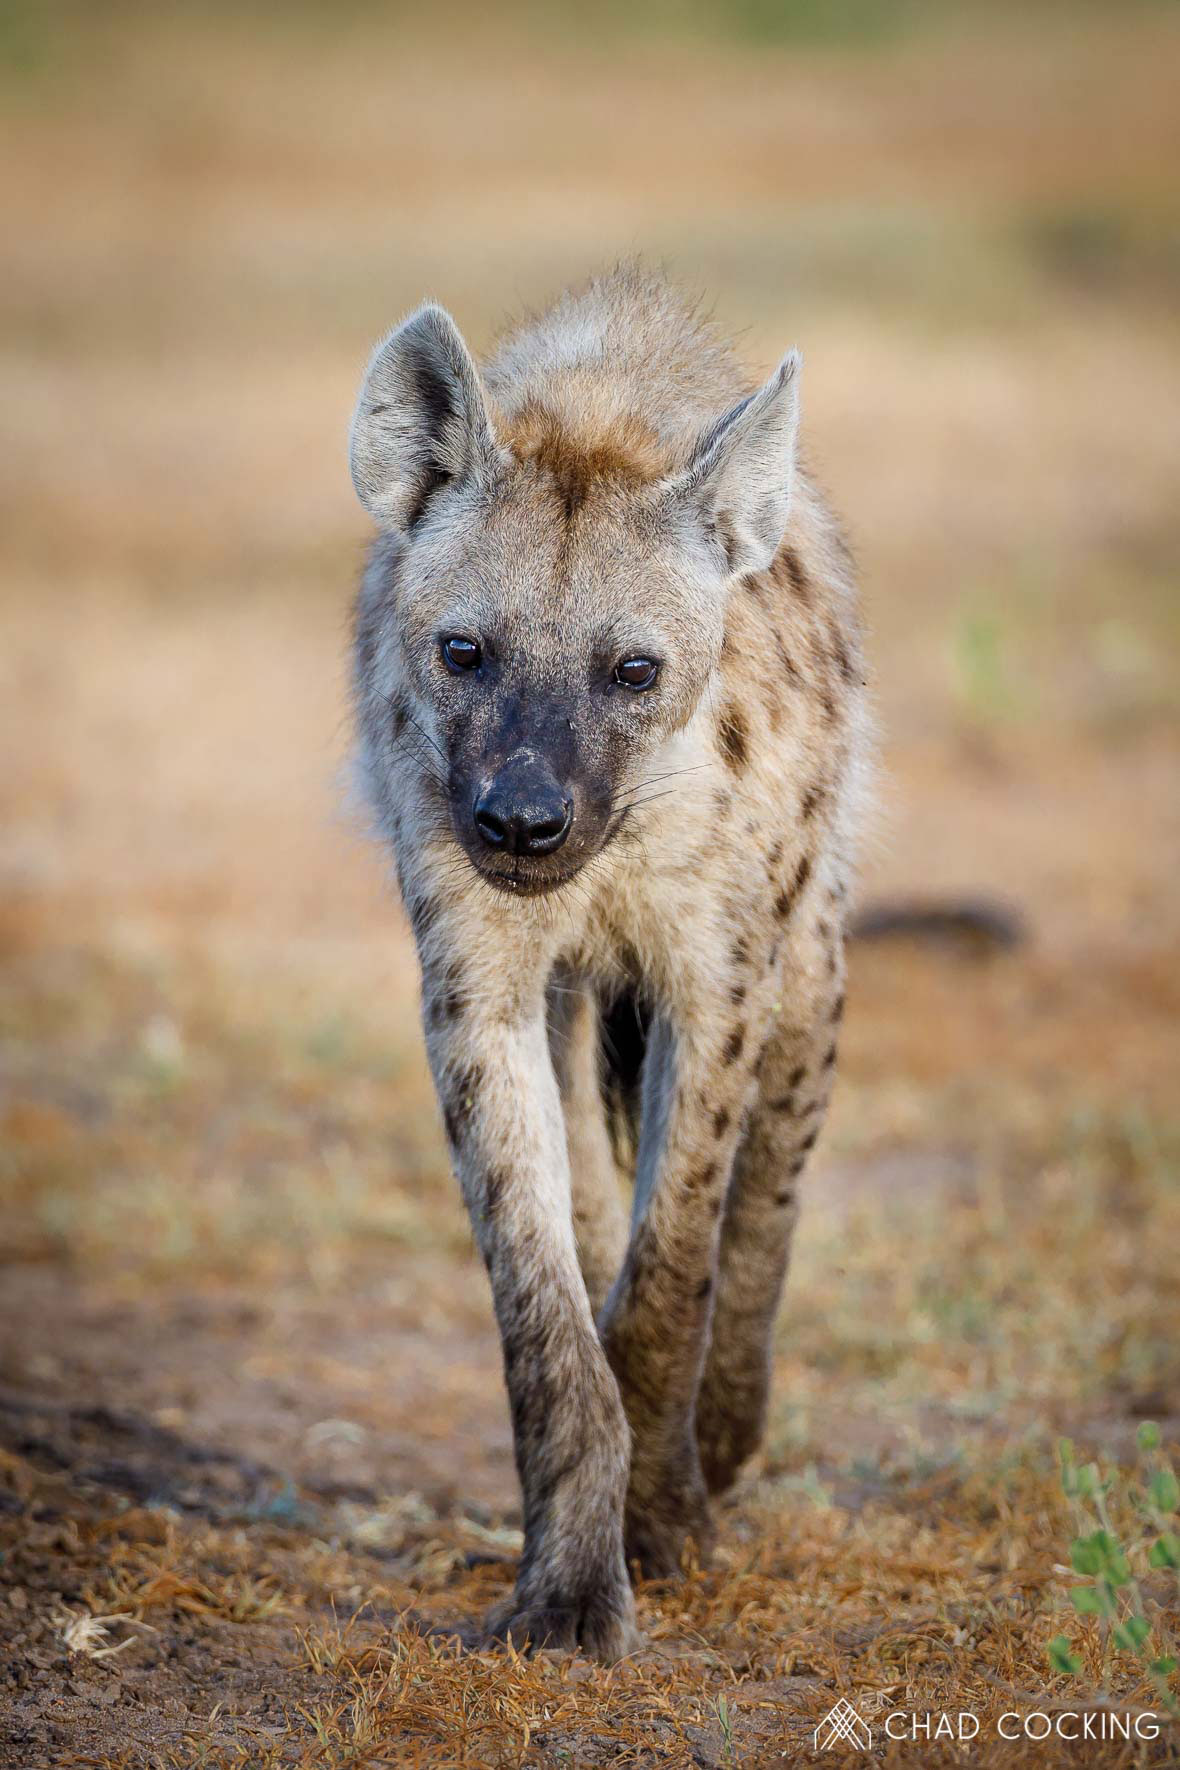 Tanda Tula - spotted hyena in the Greater Kruger